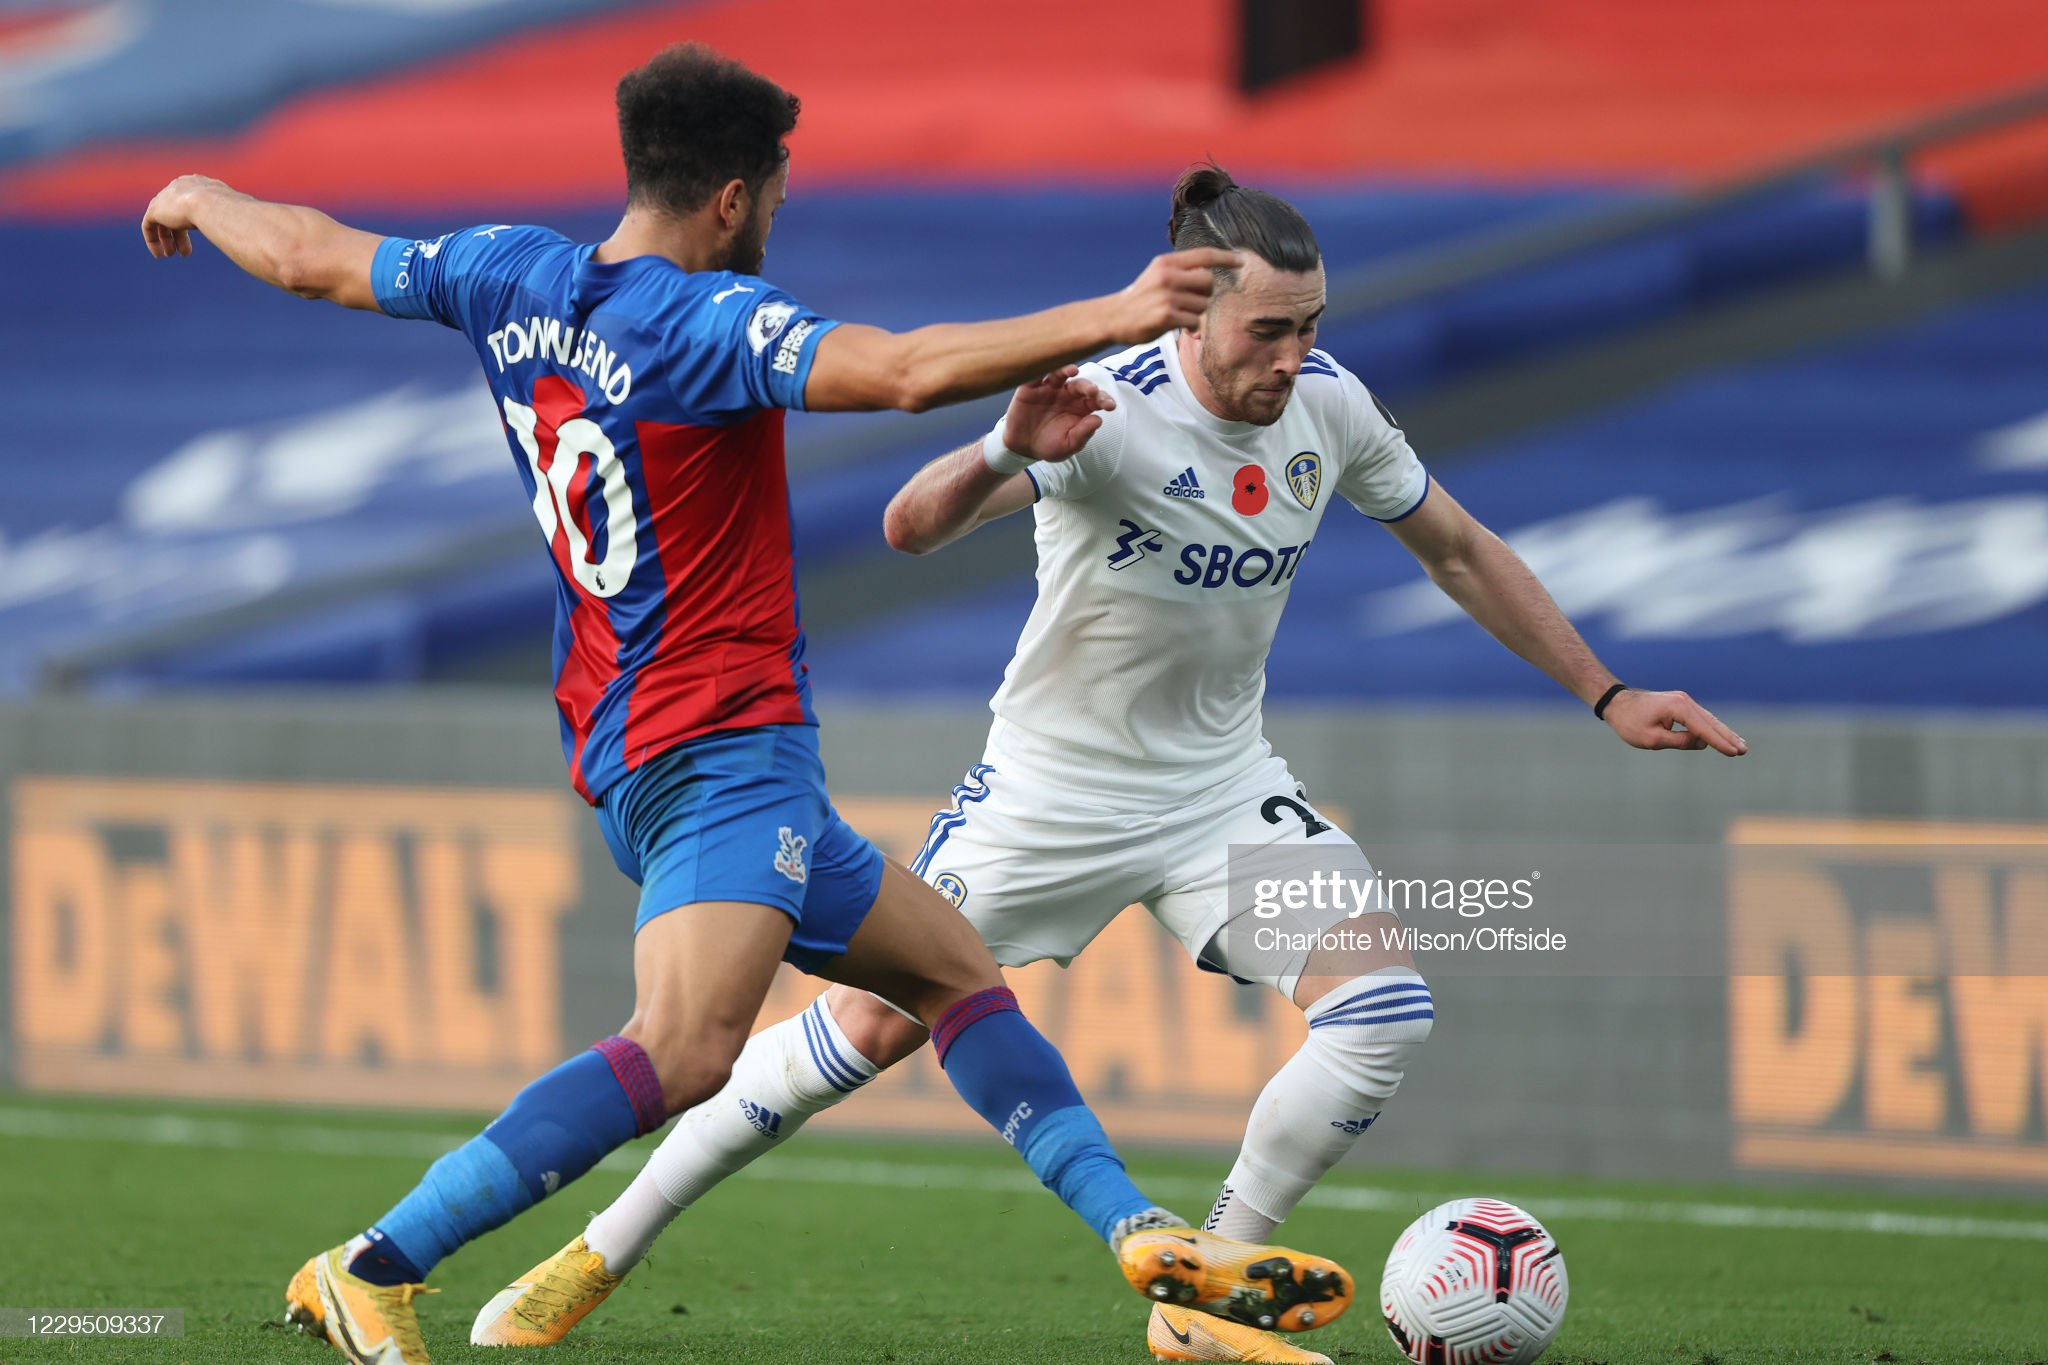 Leeds vs Crystal Palace preview, prediction and odds